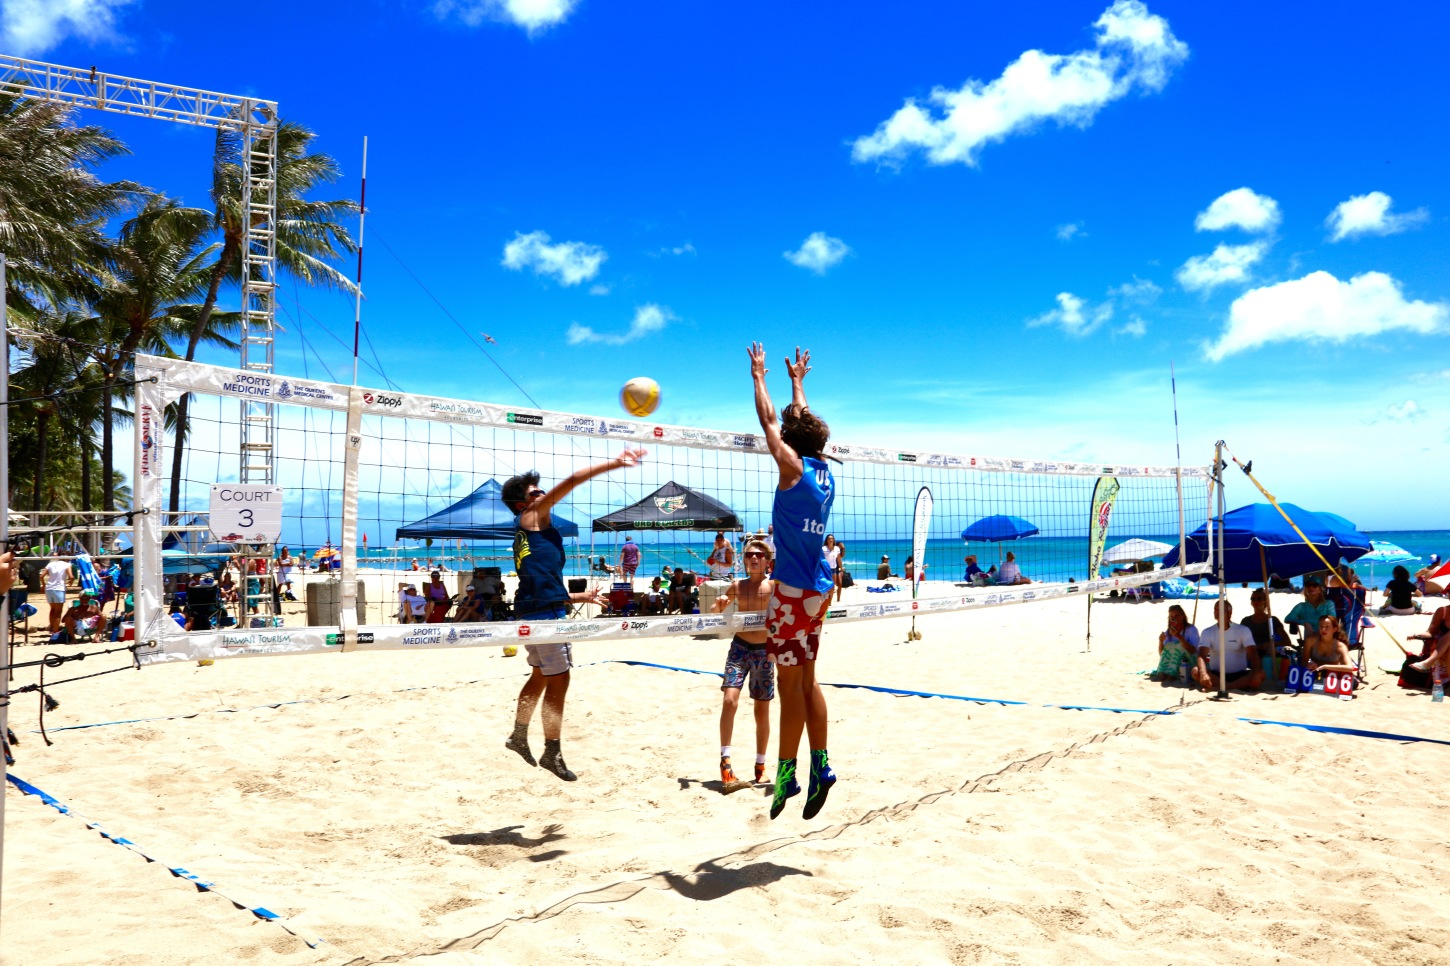 900a2d8709e Spike and Serve Volleyball Beach Volleyball Tournaments and Premier ...